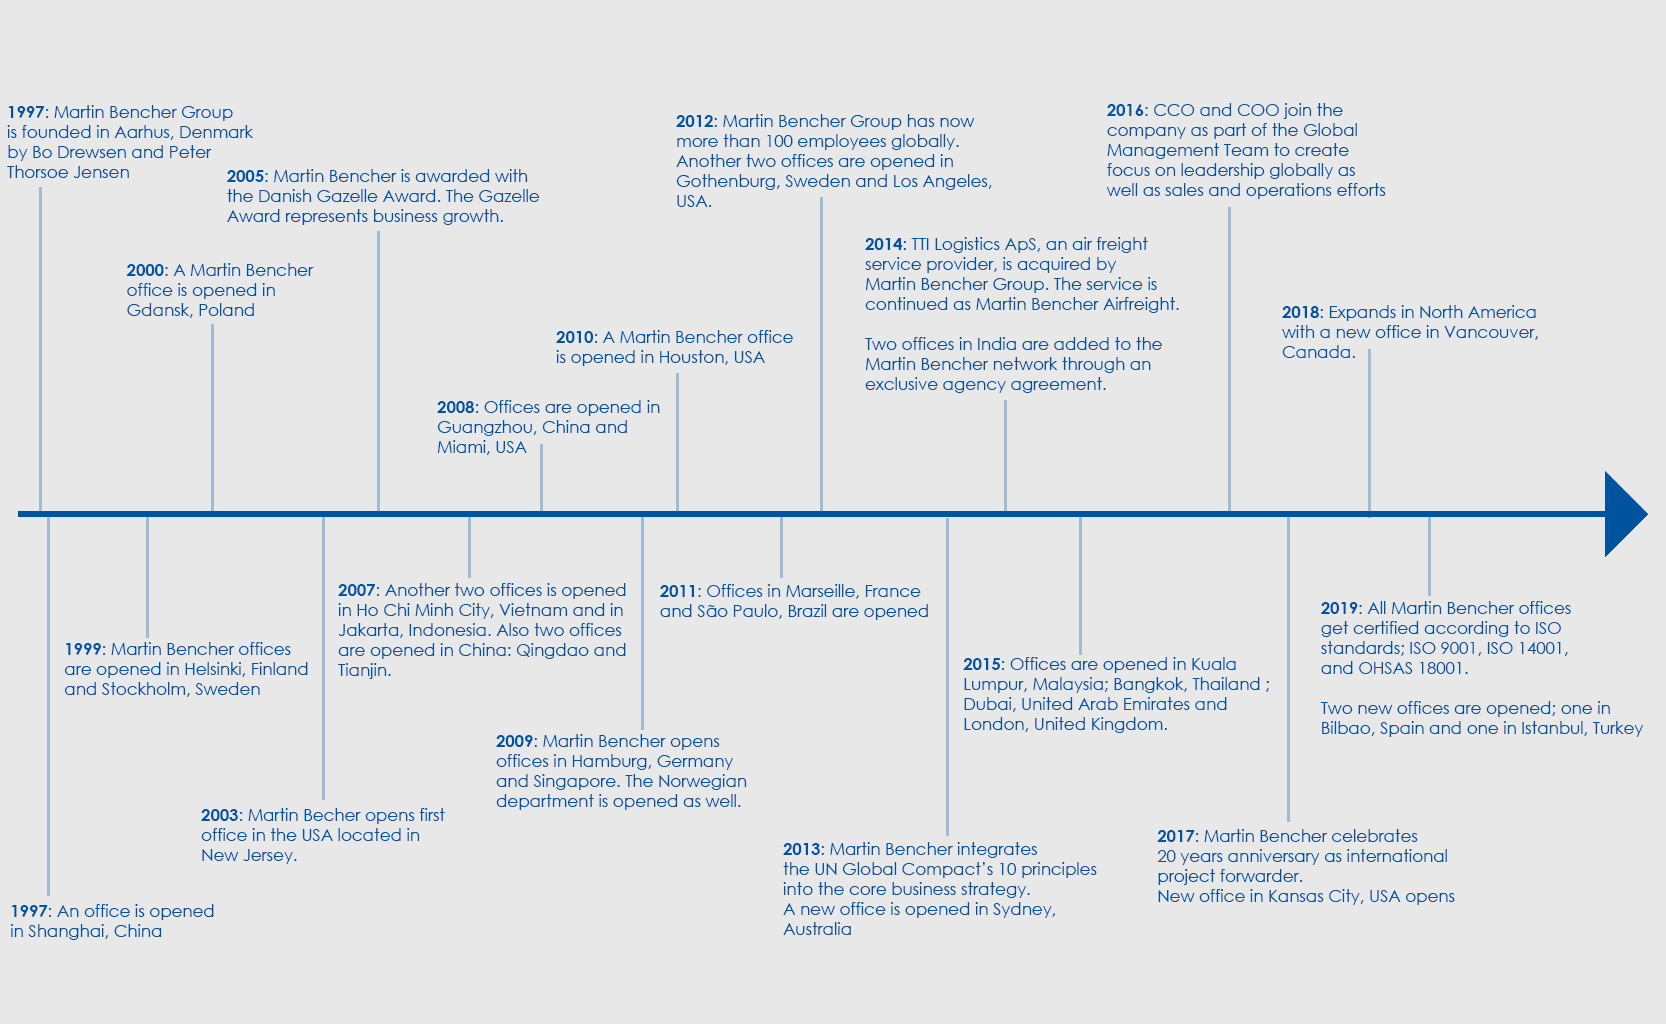 Timeline of Martin Bencher Group from 1997 to 2019